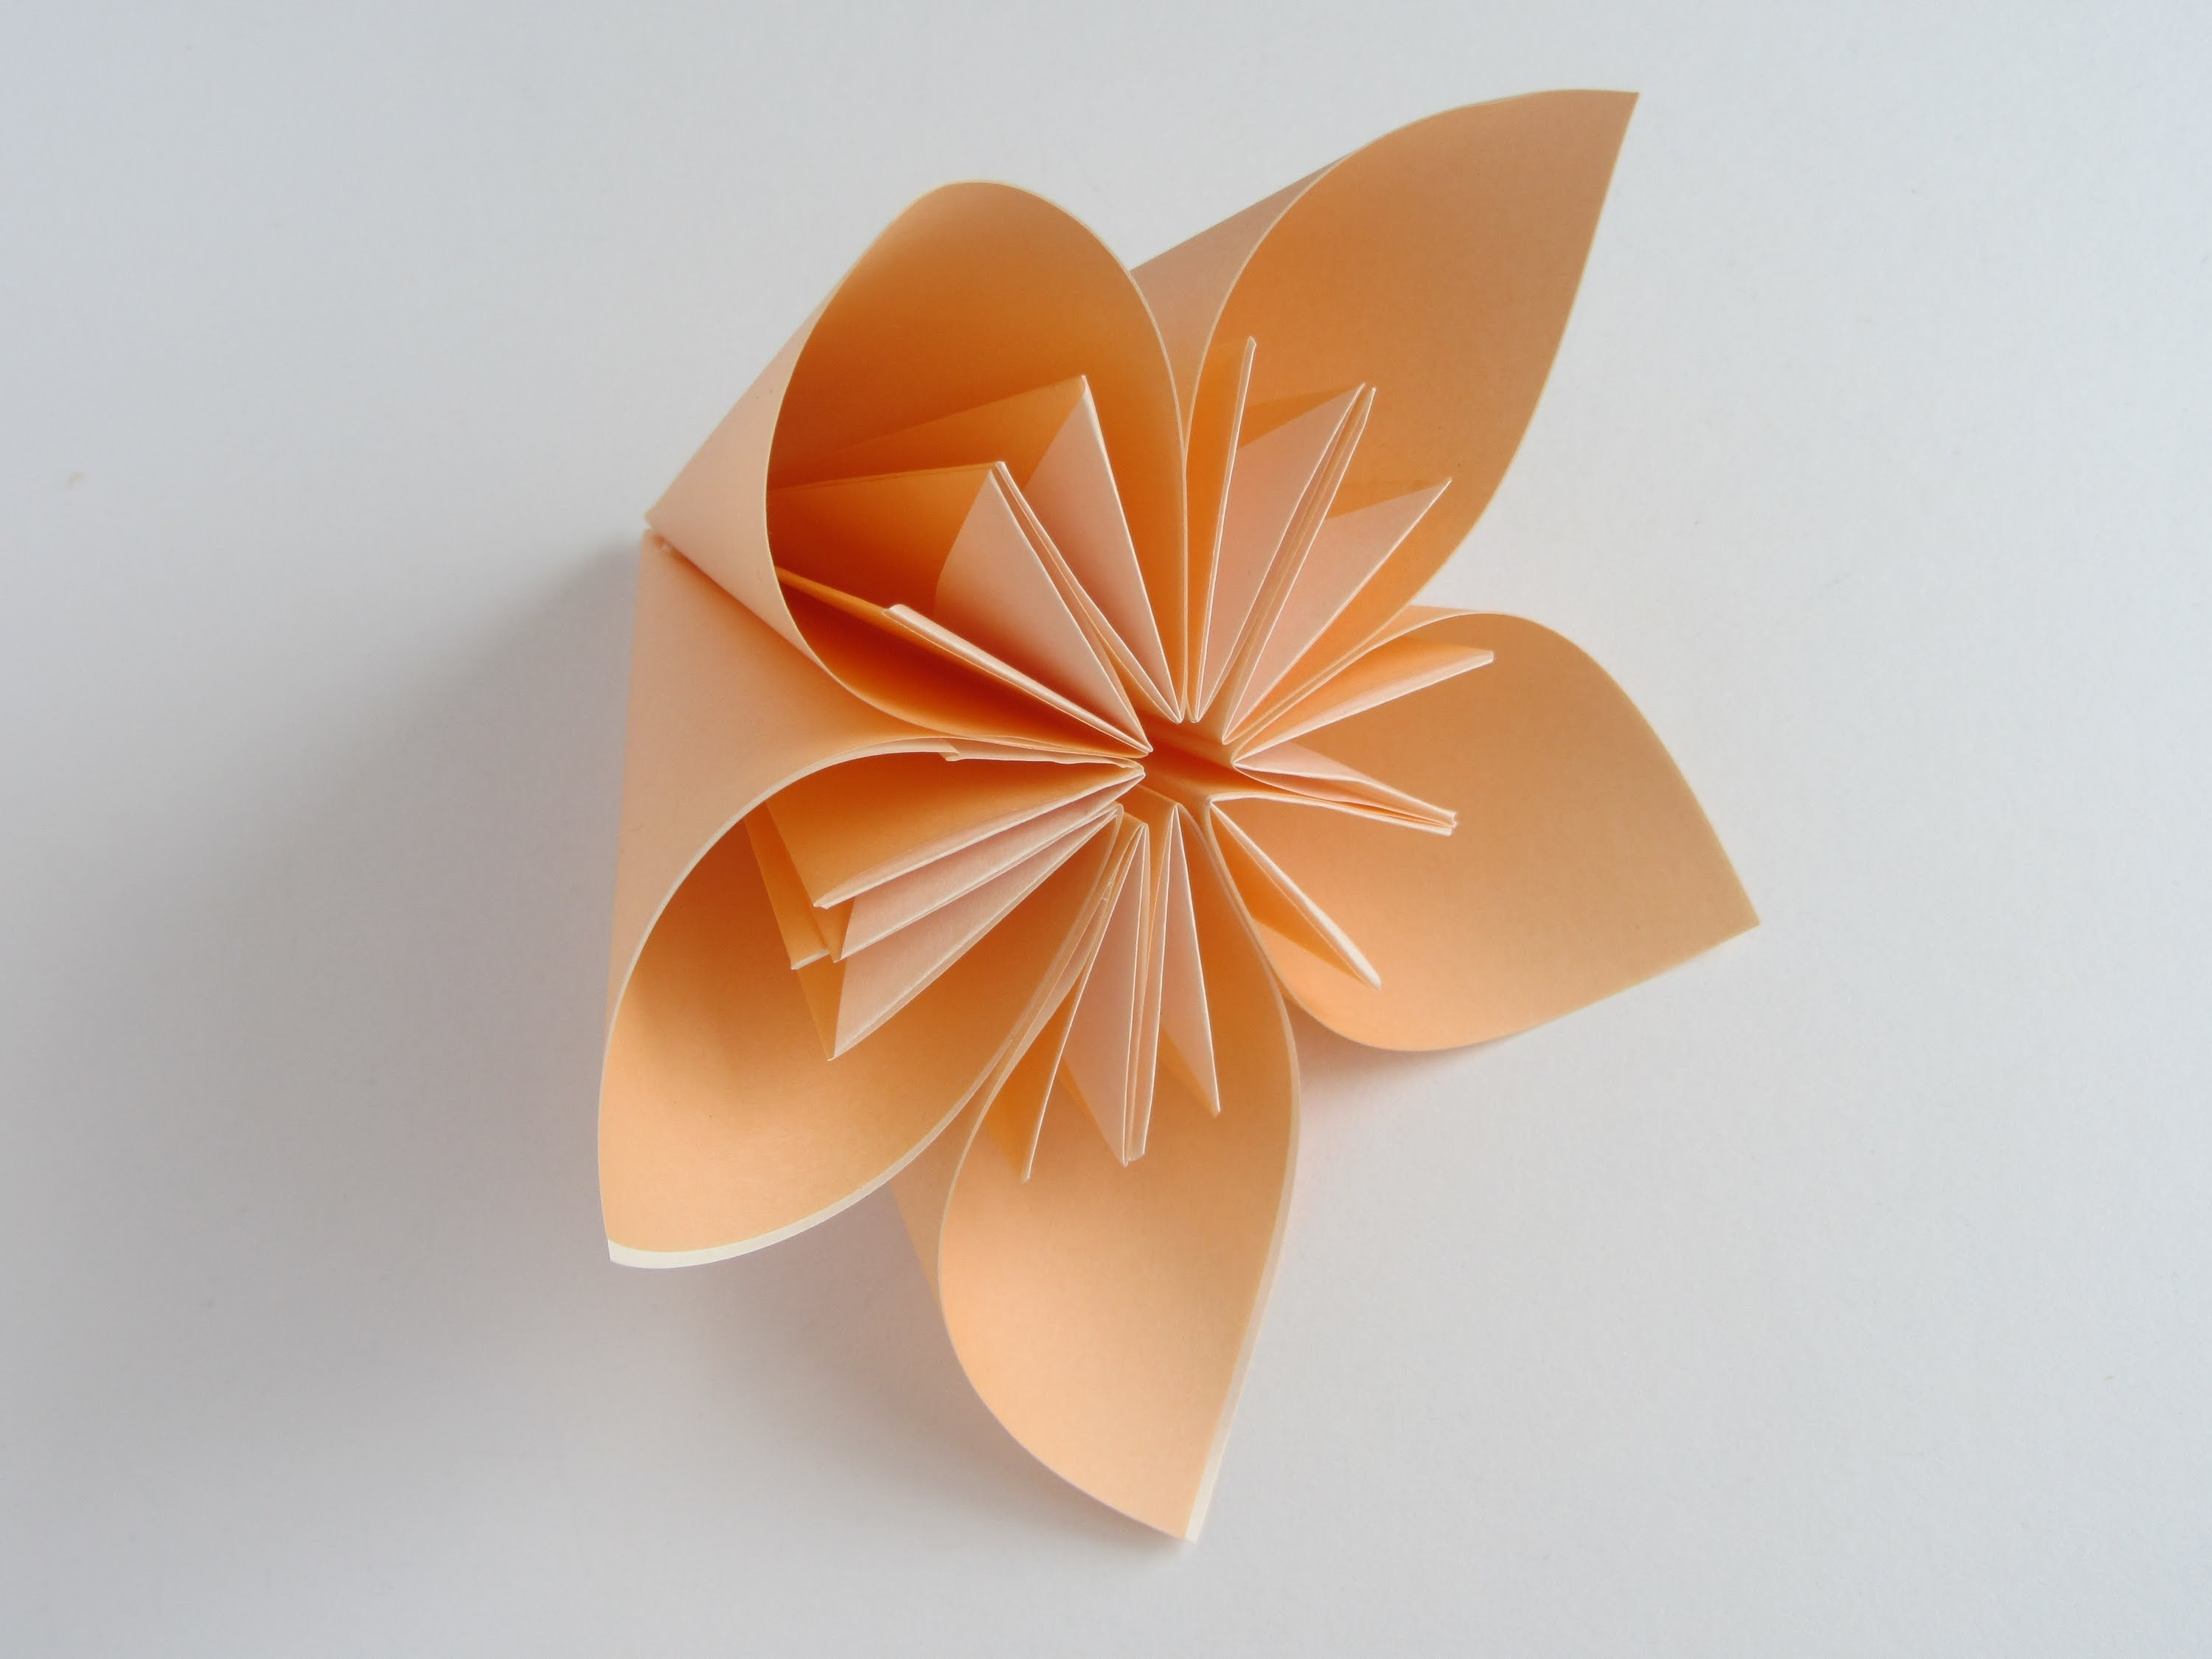 The Art of Paper Folding - How to Make an Origami Flower Kusudama